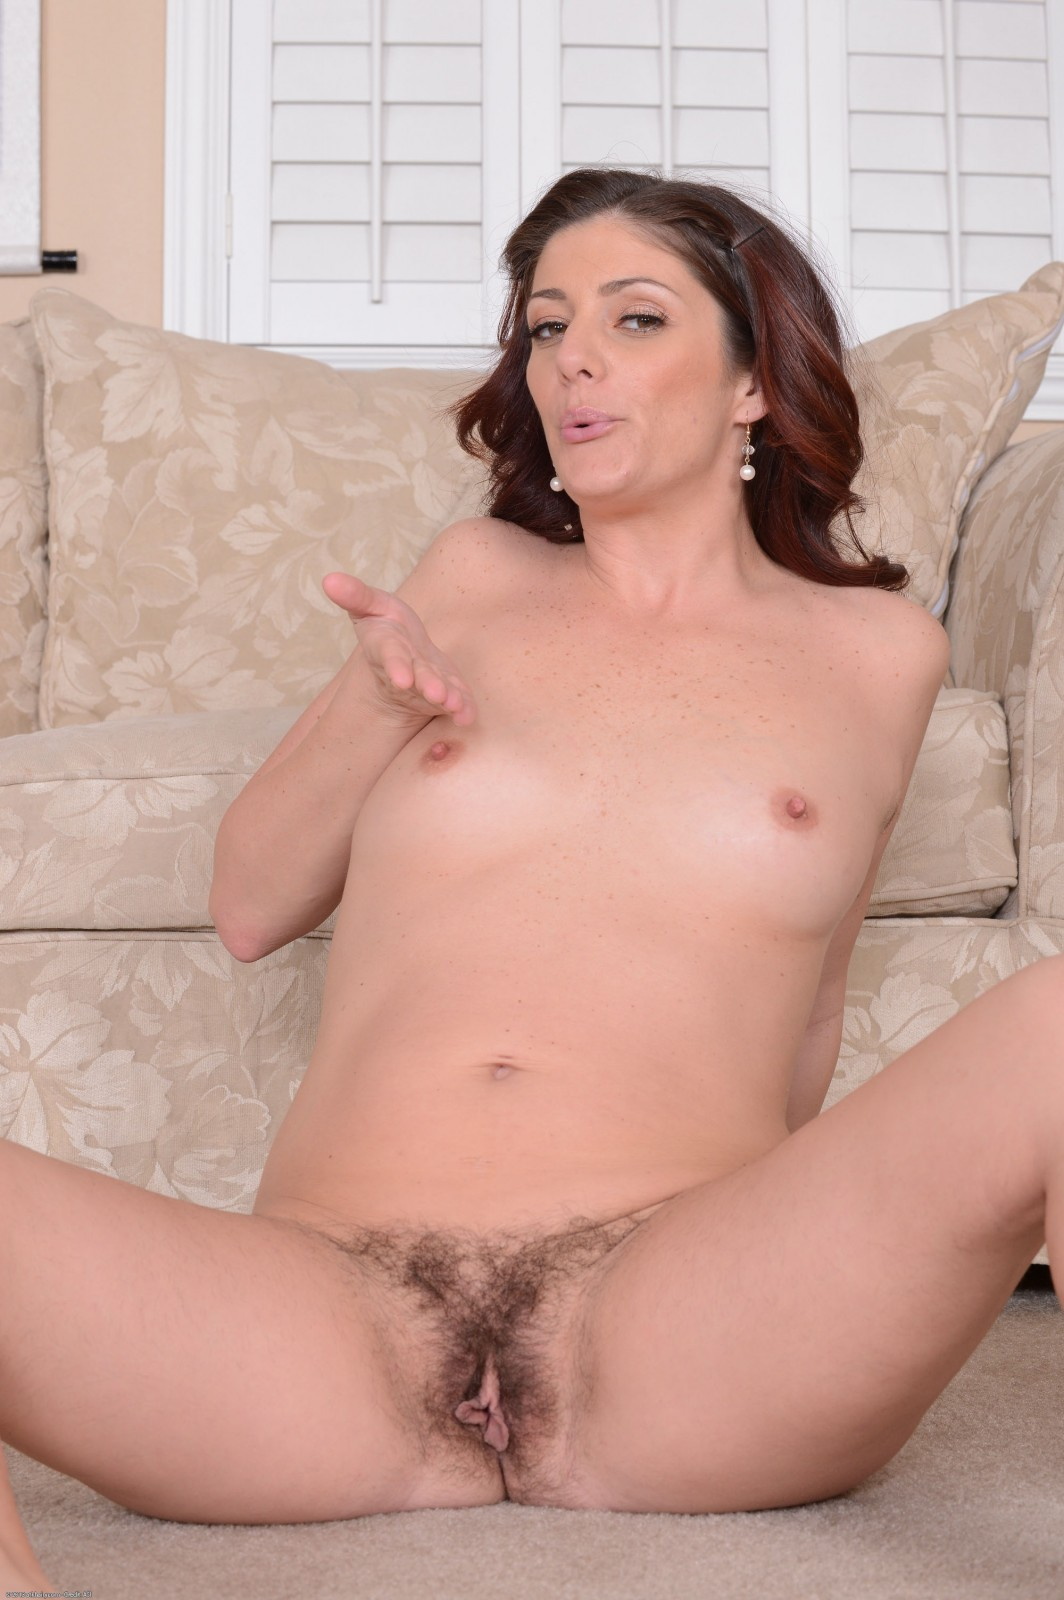 Alicia silver plays with her pubes and shows off 7